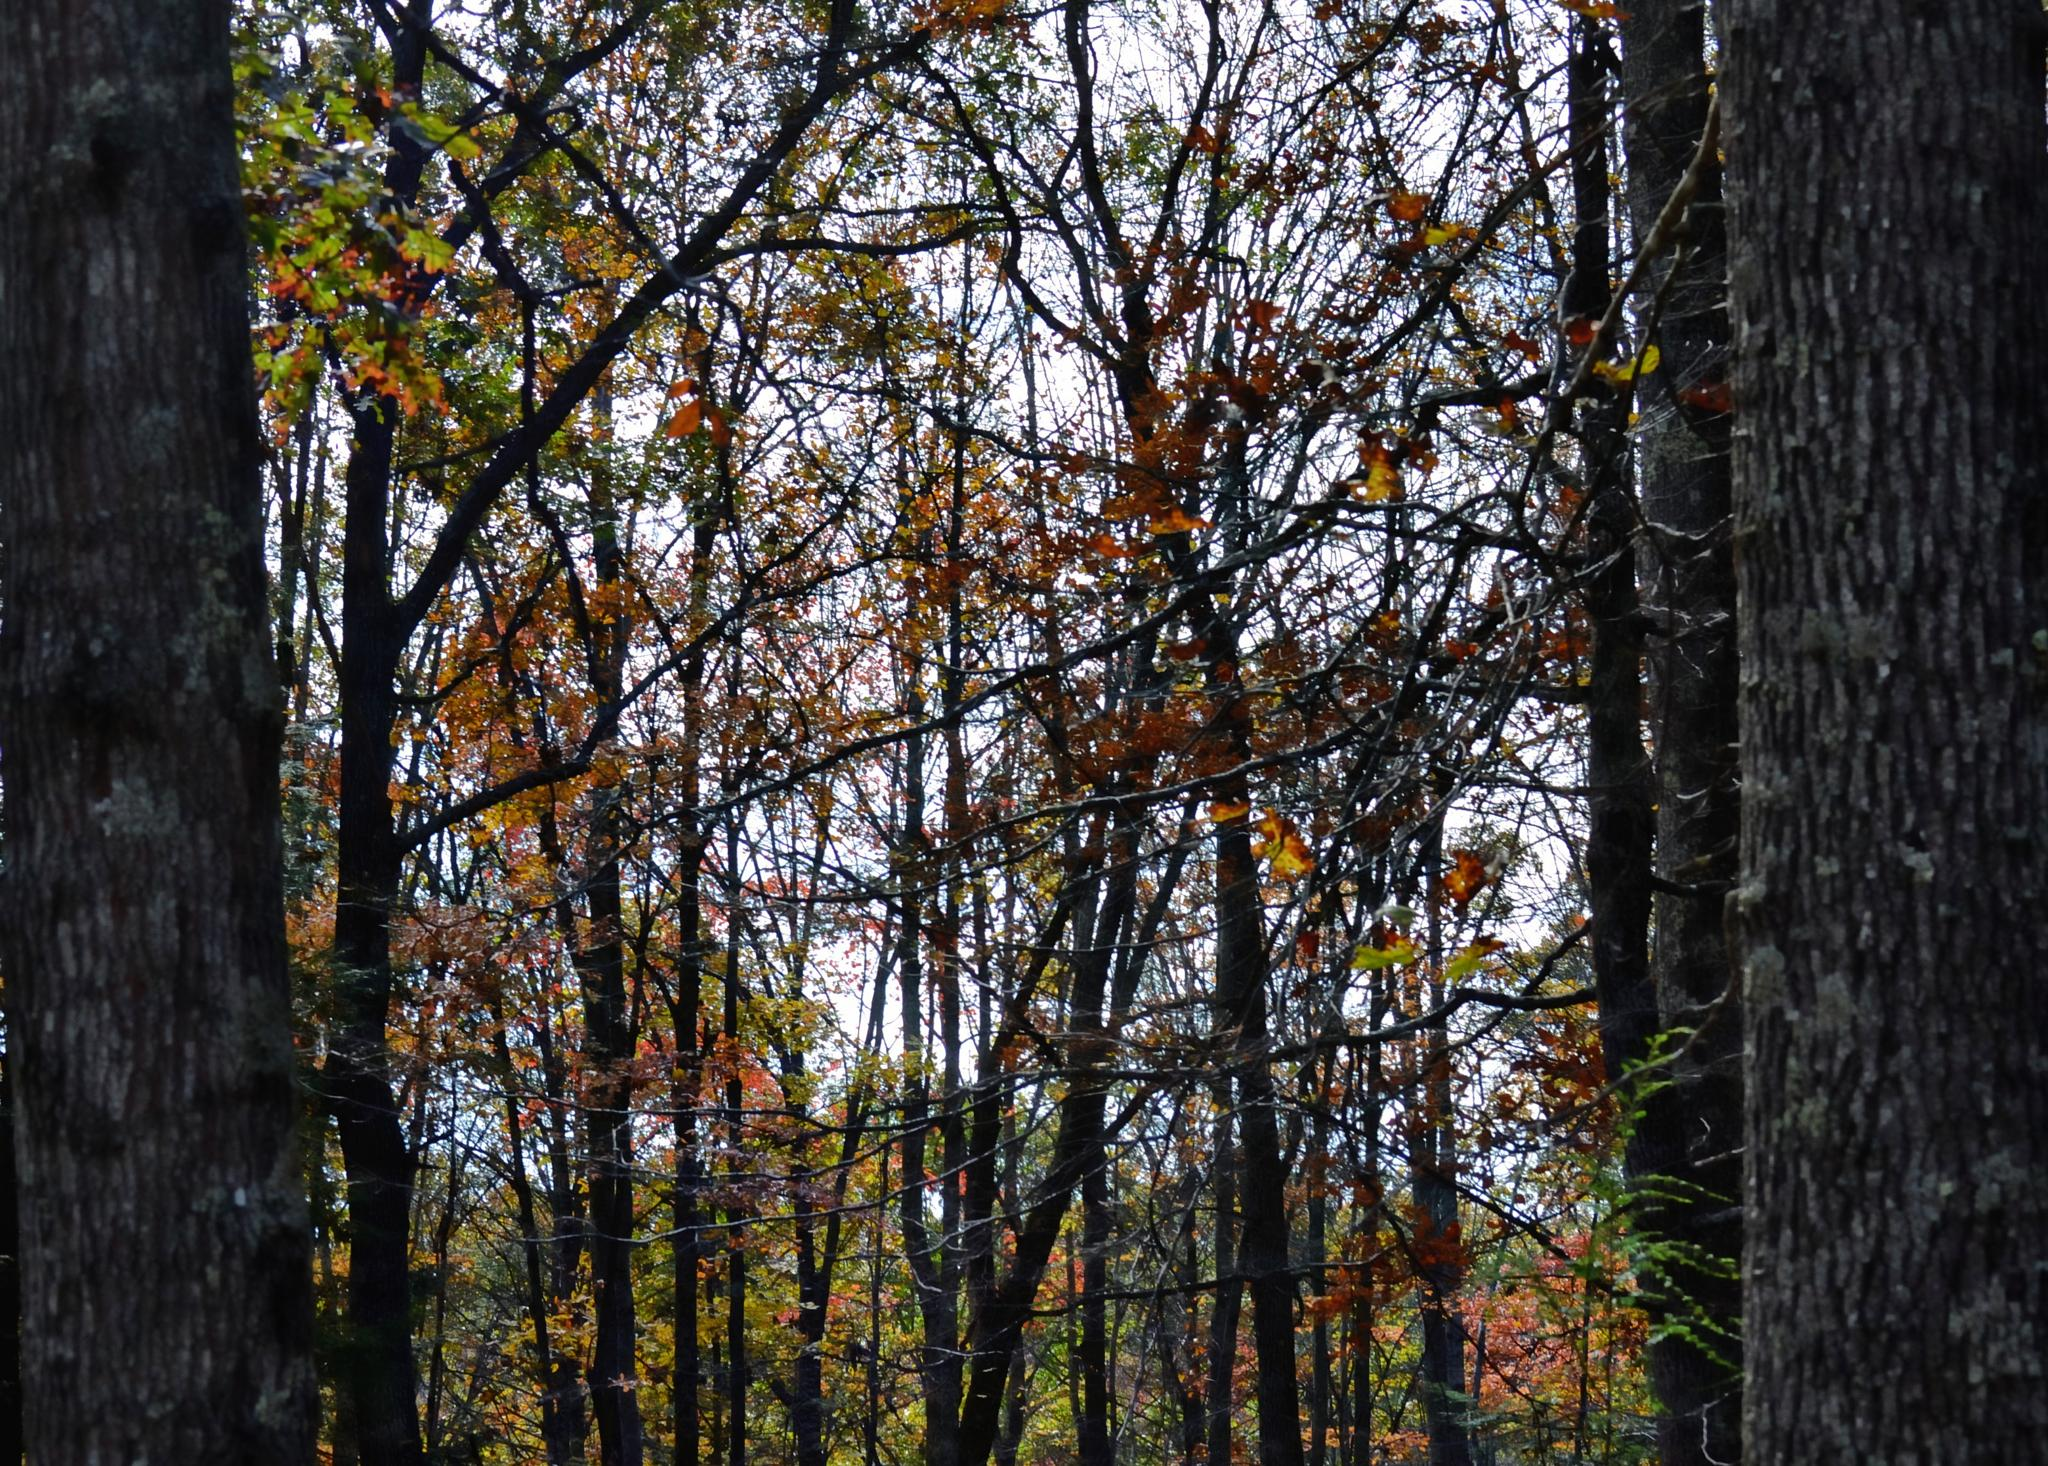 In the Woods by lindandarrell